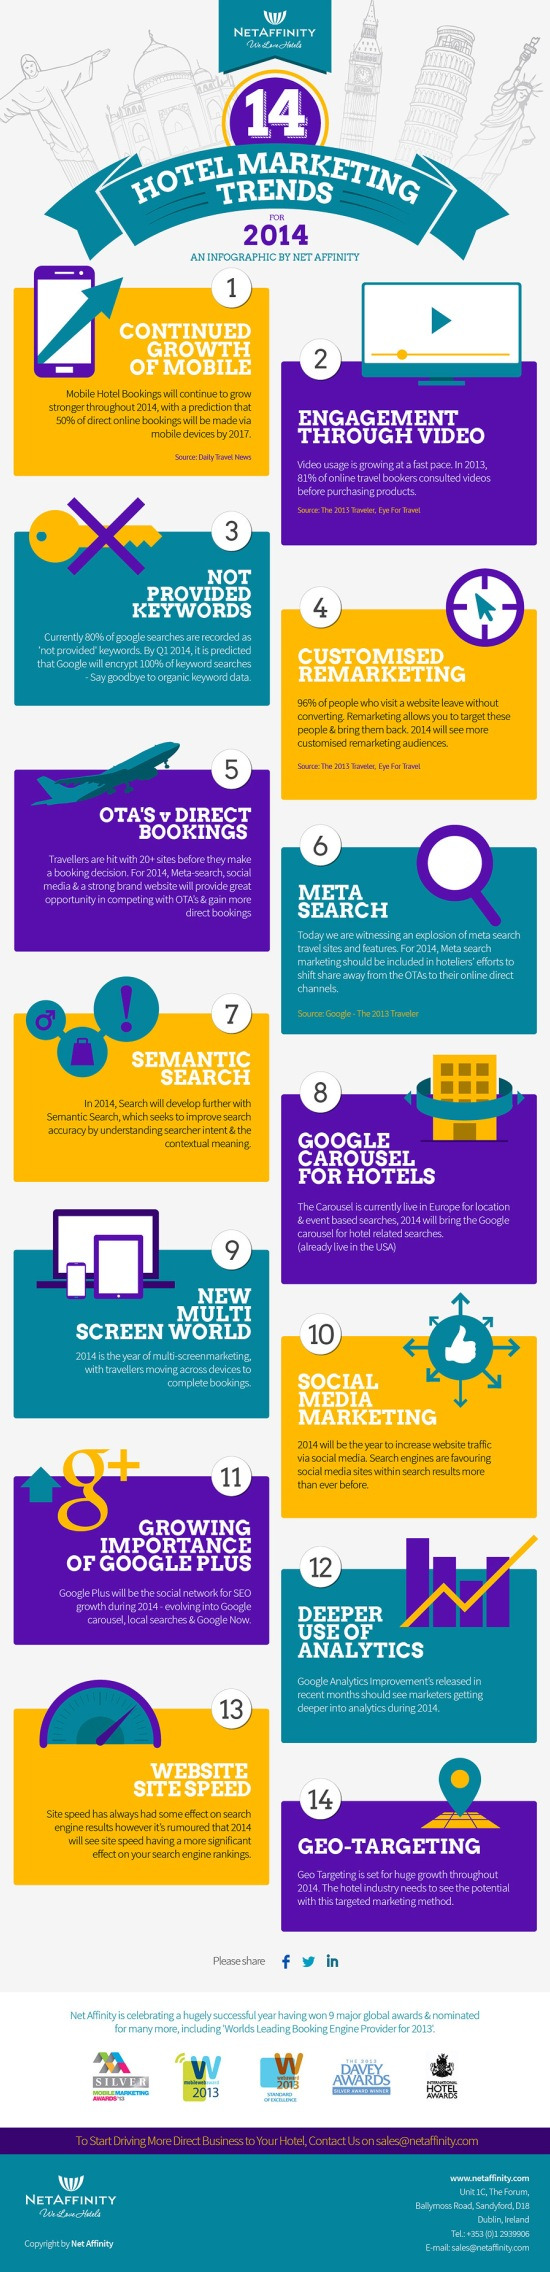 hotel-marketing-trends-for-2014-infographic